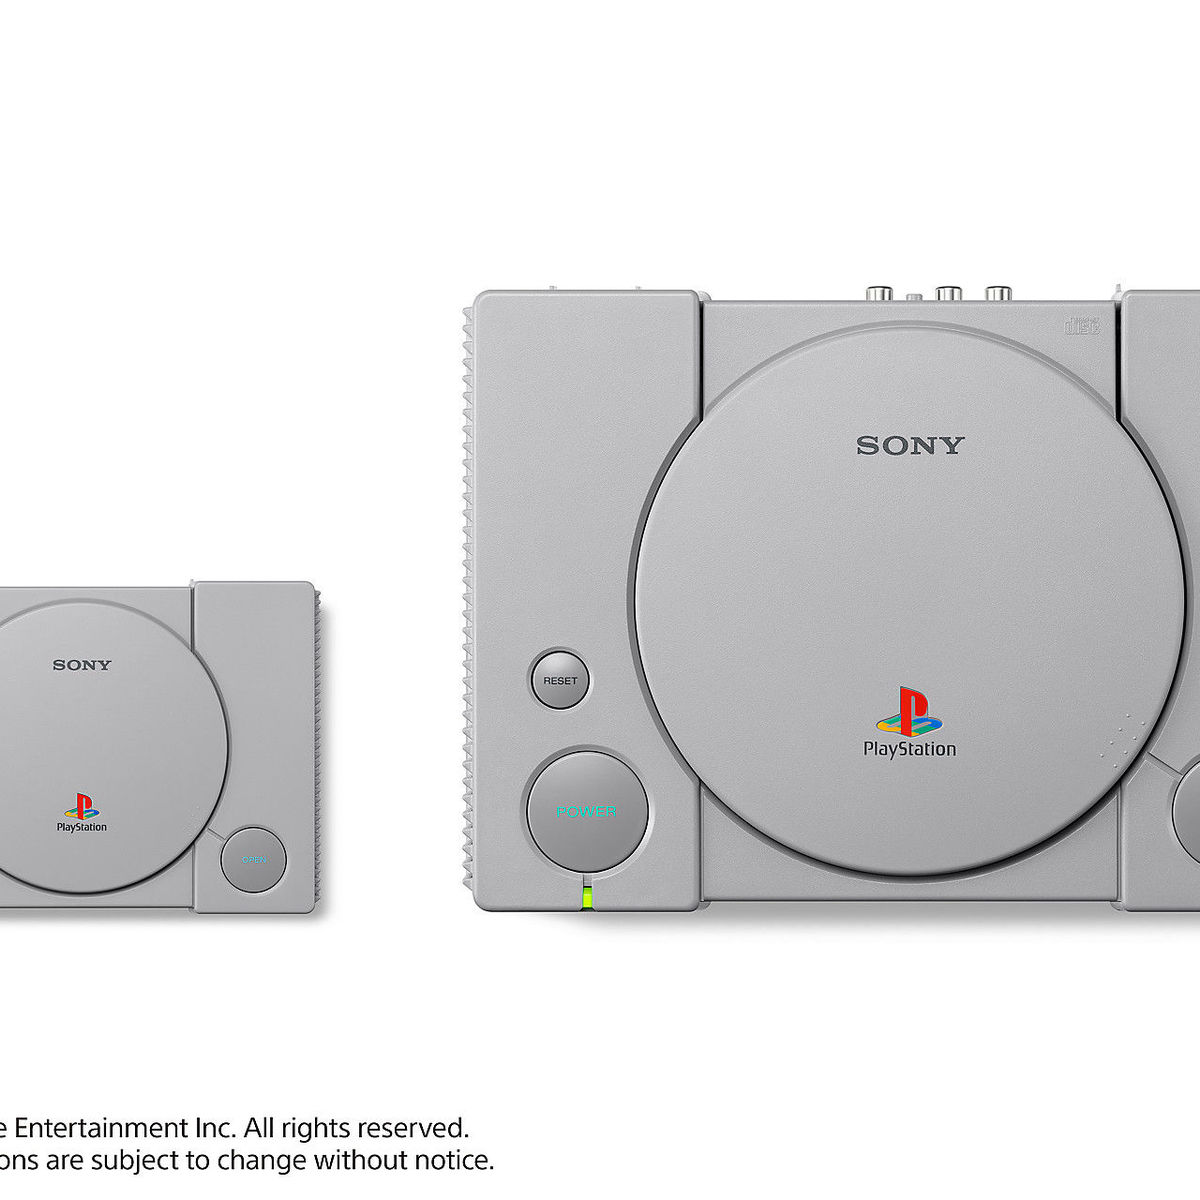 Why Get a PlayStation When You Can Get The PLAYSTATION CLASSIC